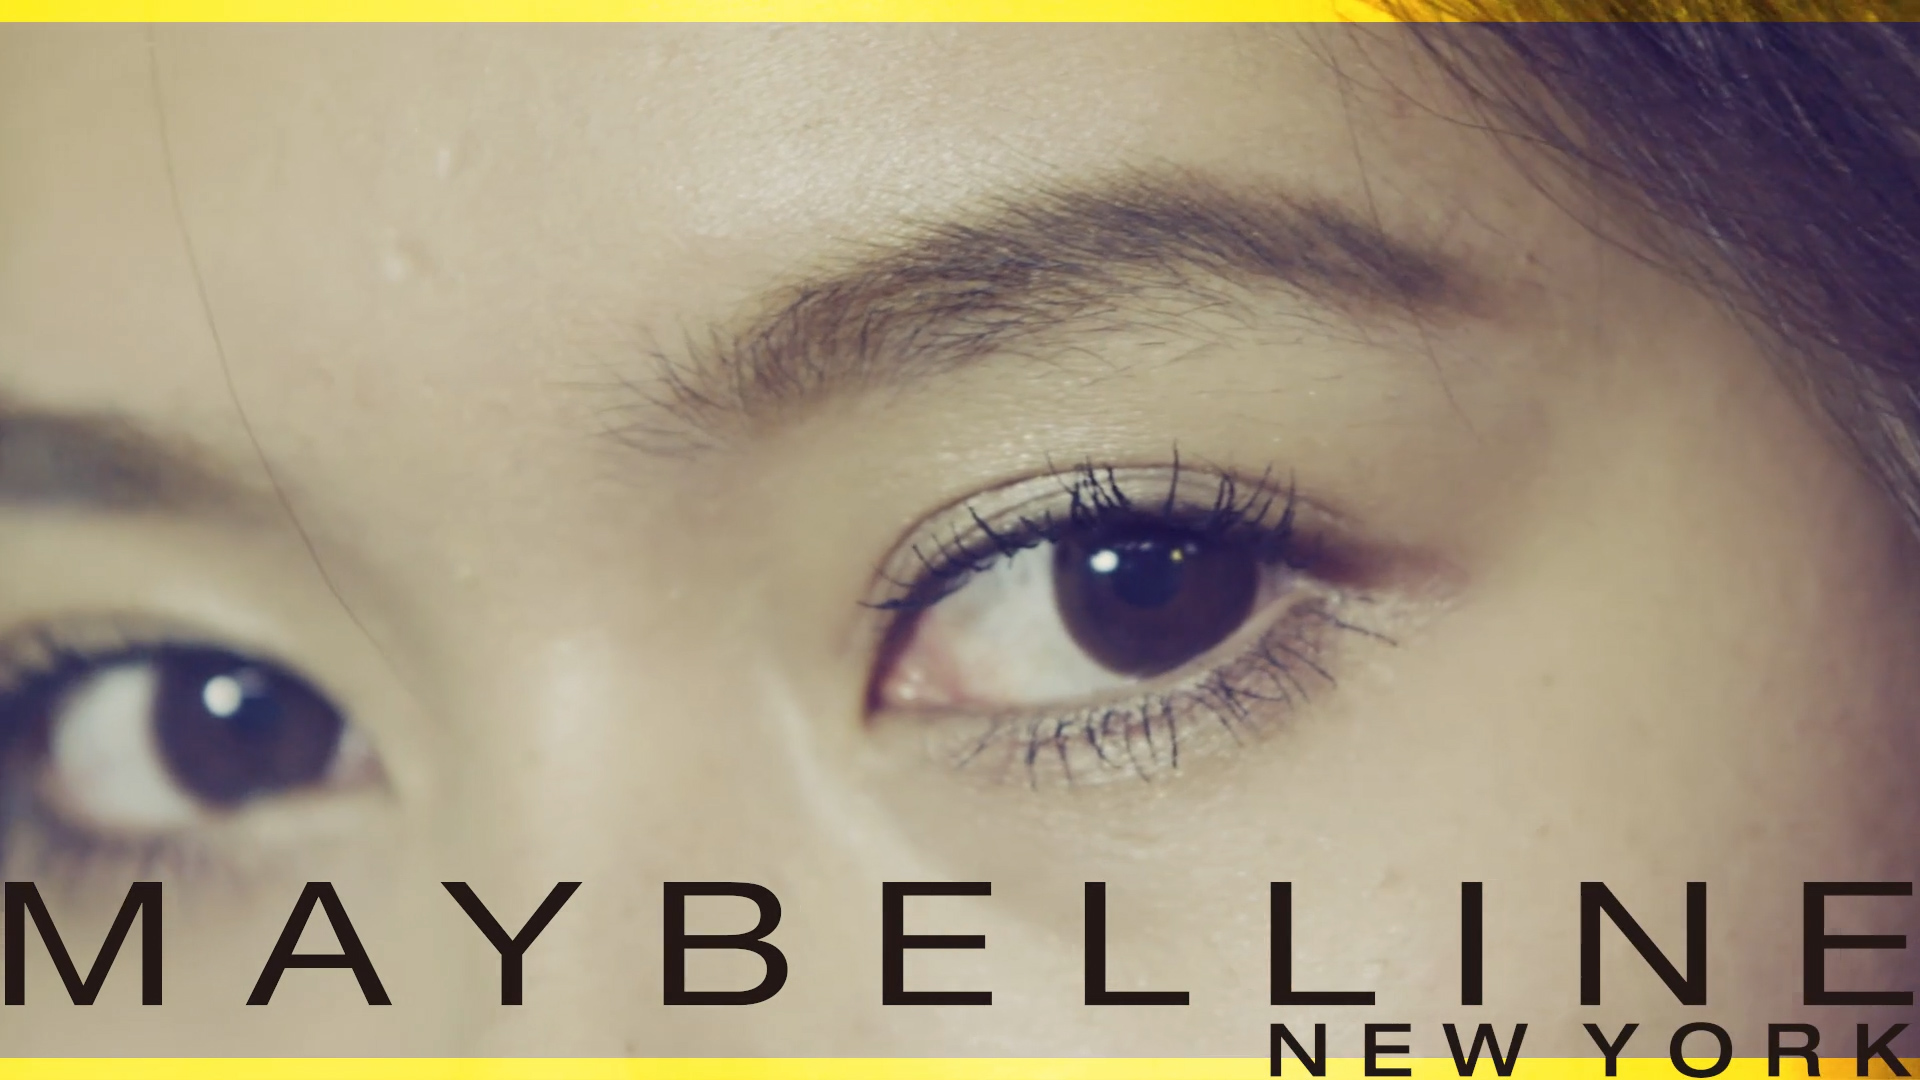 MAYBELLINE/BIGSHOT WEBCM